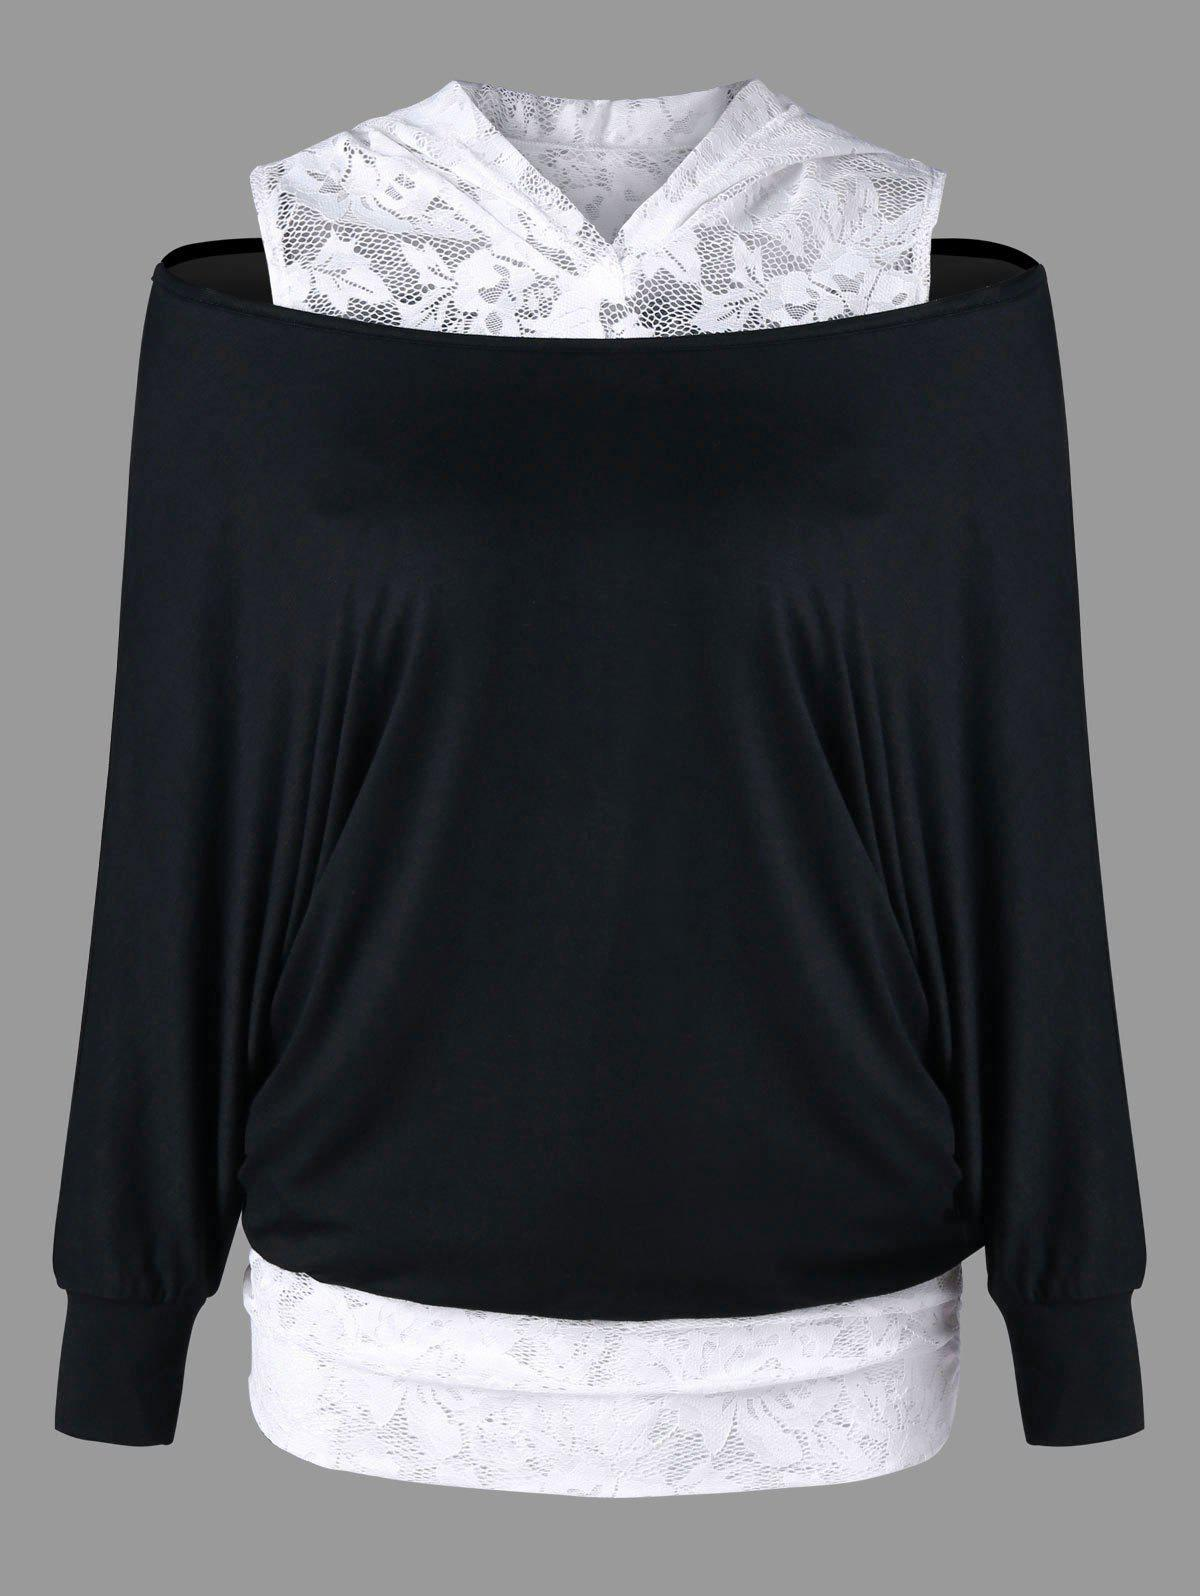 Lace Panel Cold Shoulder HoodieWOMEN<br><br>Size: L; Color: WHITE AND BLACK; Material: Rayon,Spandex; Shirt Length: Regular; Sleeve Length: Full; Style: Casual; Pattern Style: Floral; Embellishment: Lace; Season: Fall,Spring; Weight: 0.3200kg; Package Contents: 1 x Hoodie;